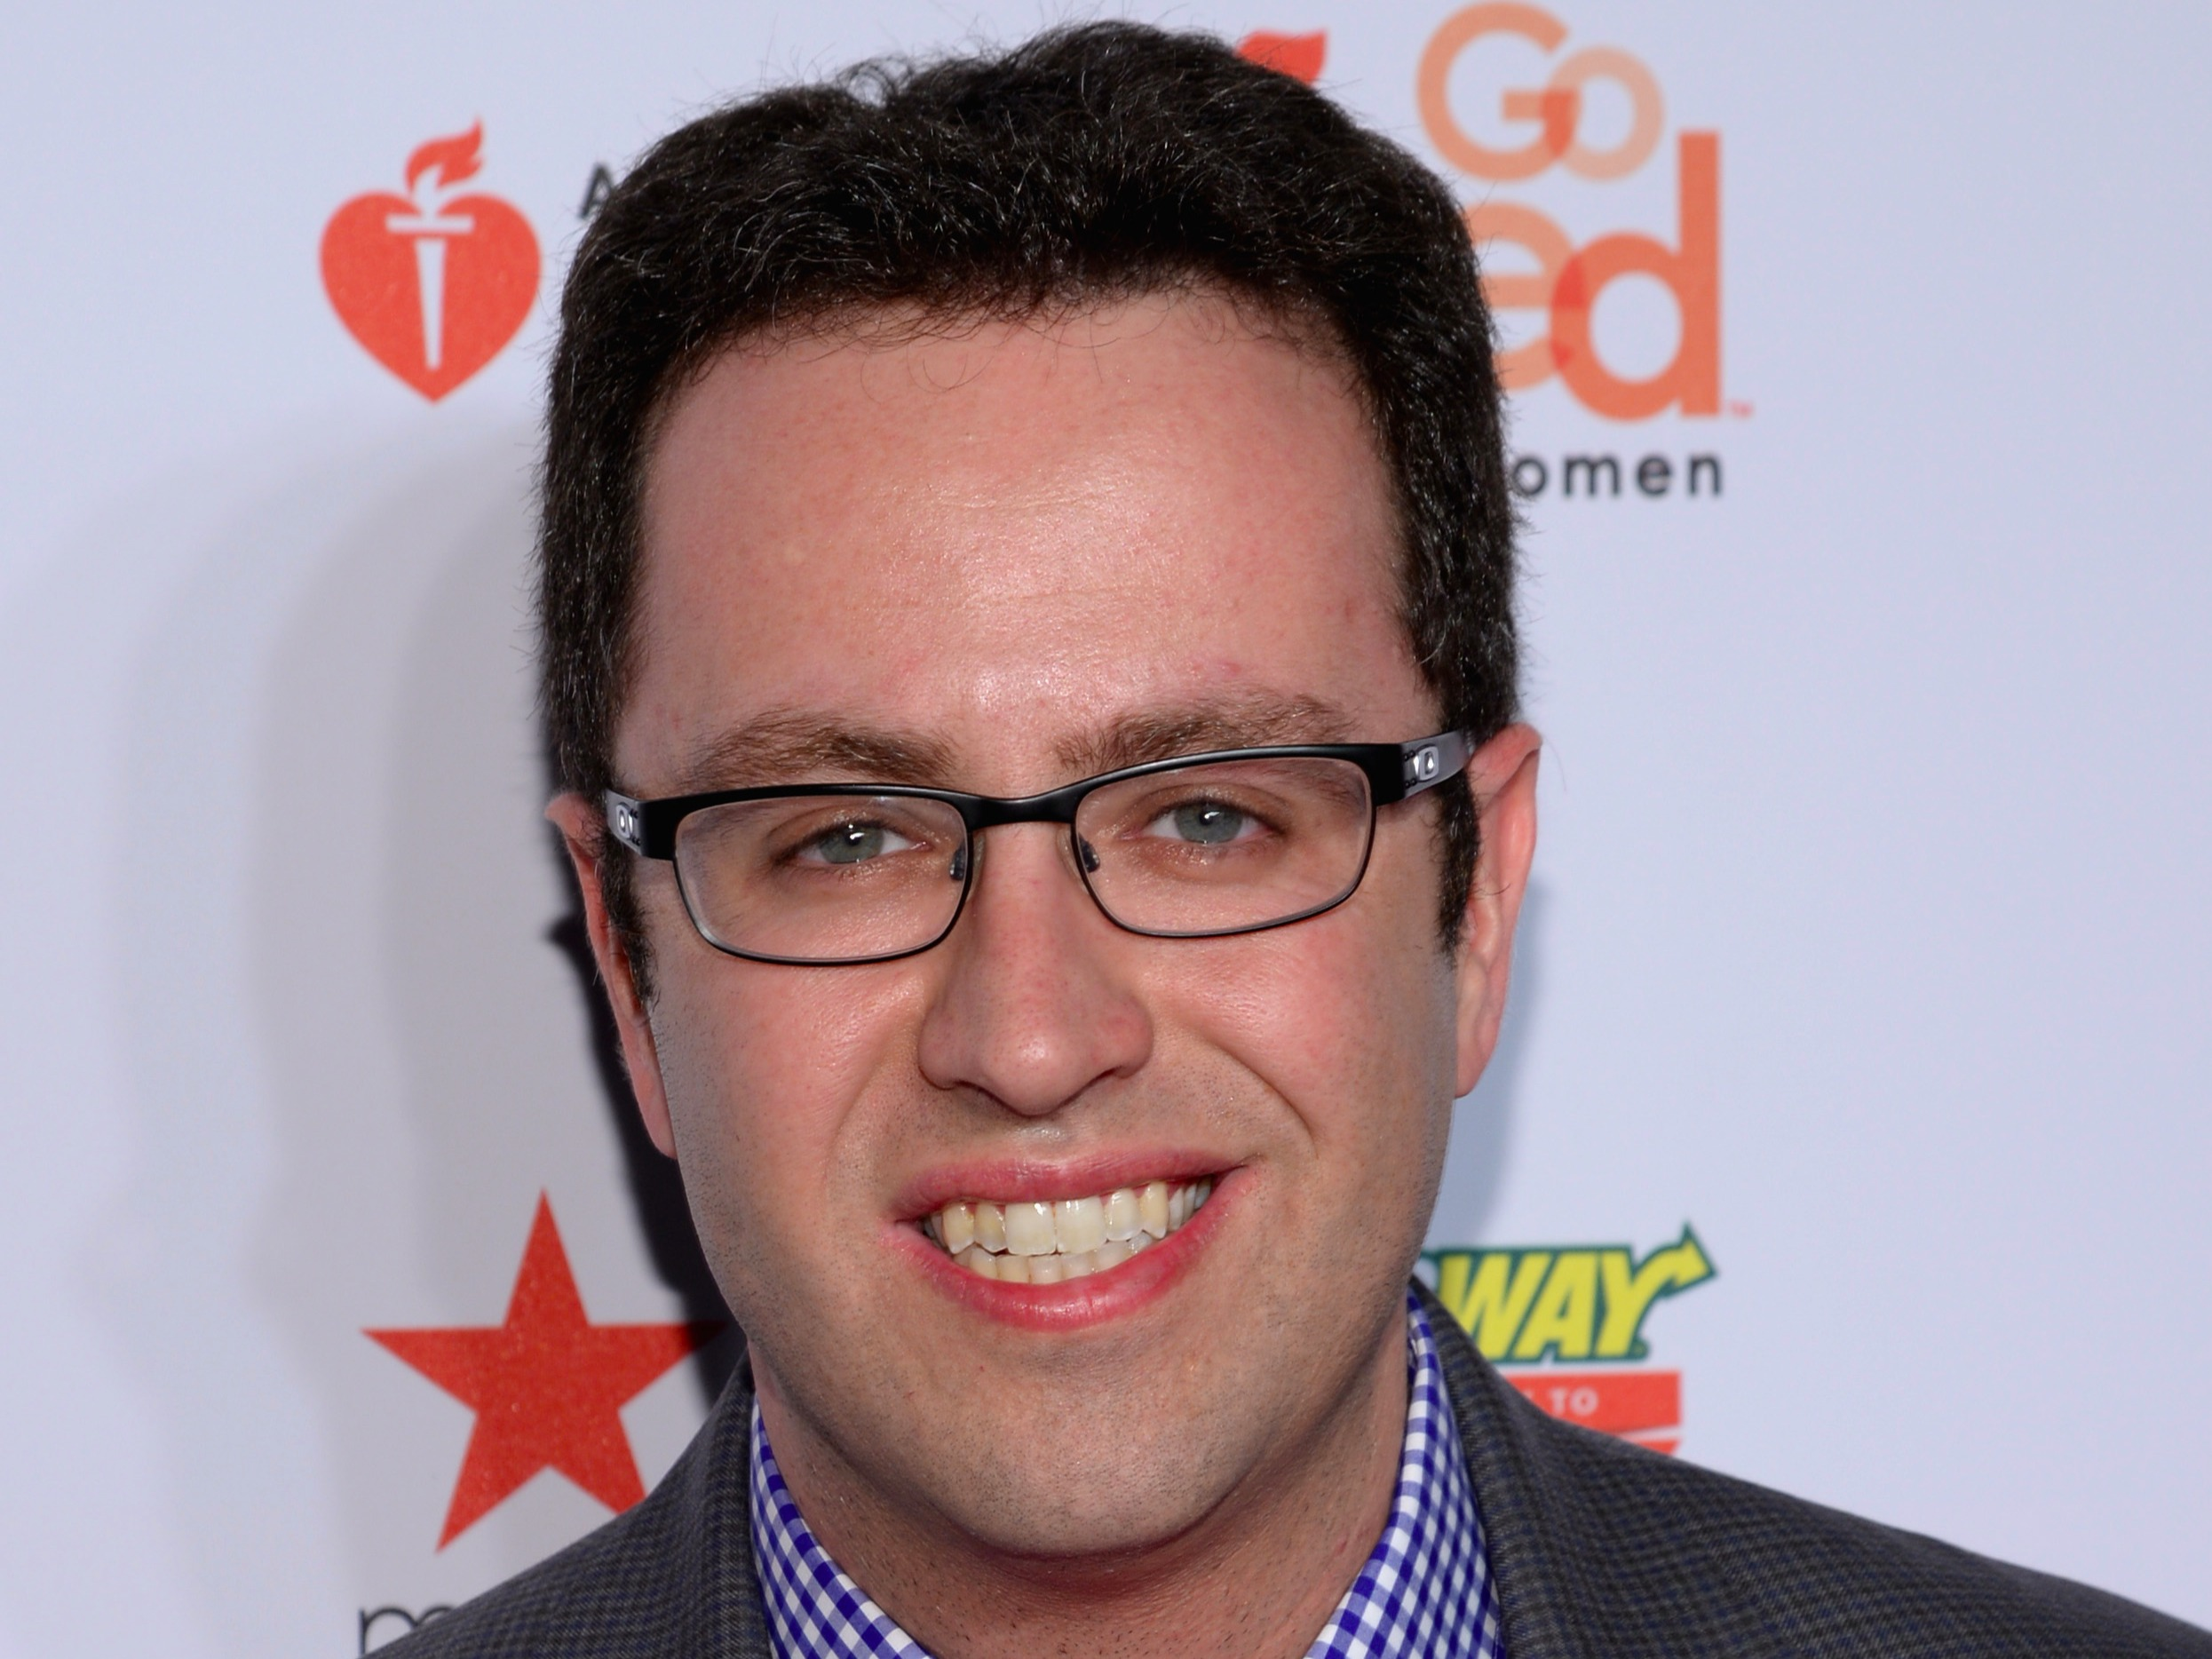 subway-calls-the-latest-report-on-jared-fogle-appalling